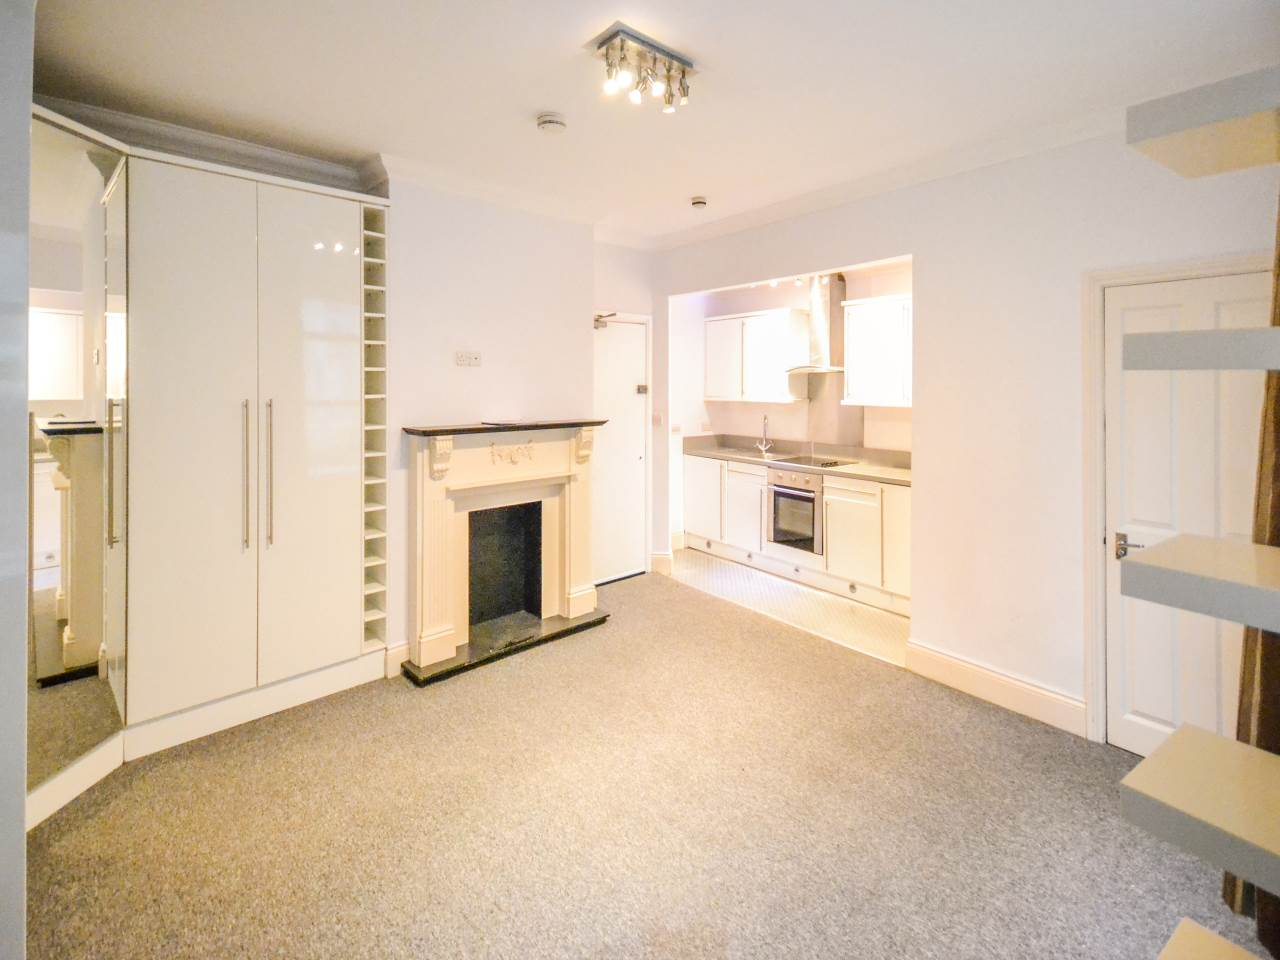 * TOWN CENTRE STUDIO * GROUND FLOOR * MODERN KITCHEN * SHOWER ROOM * BUILT IN WARDROBES * CLOSE TO TOWN CENTRE & BEACHES * IDEAL BUY TO LET *